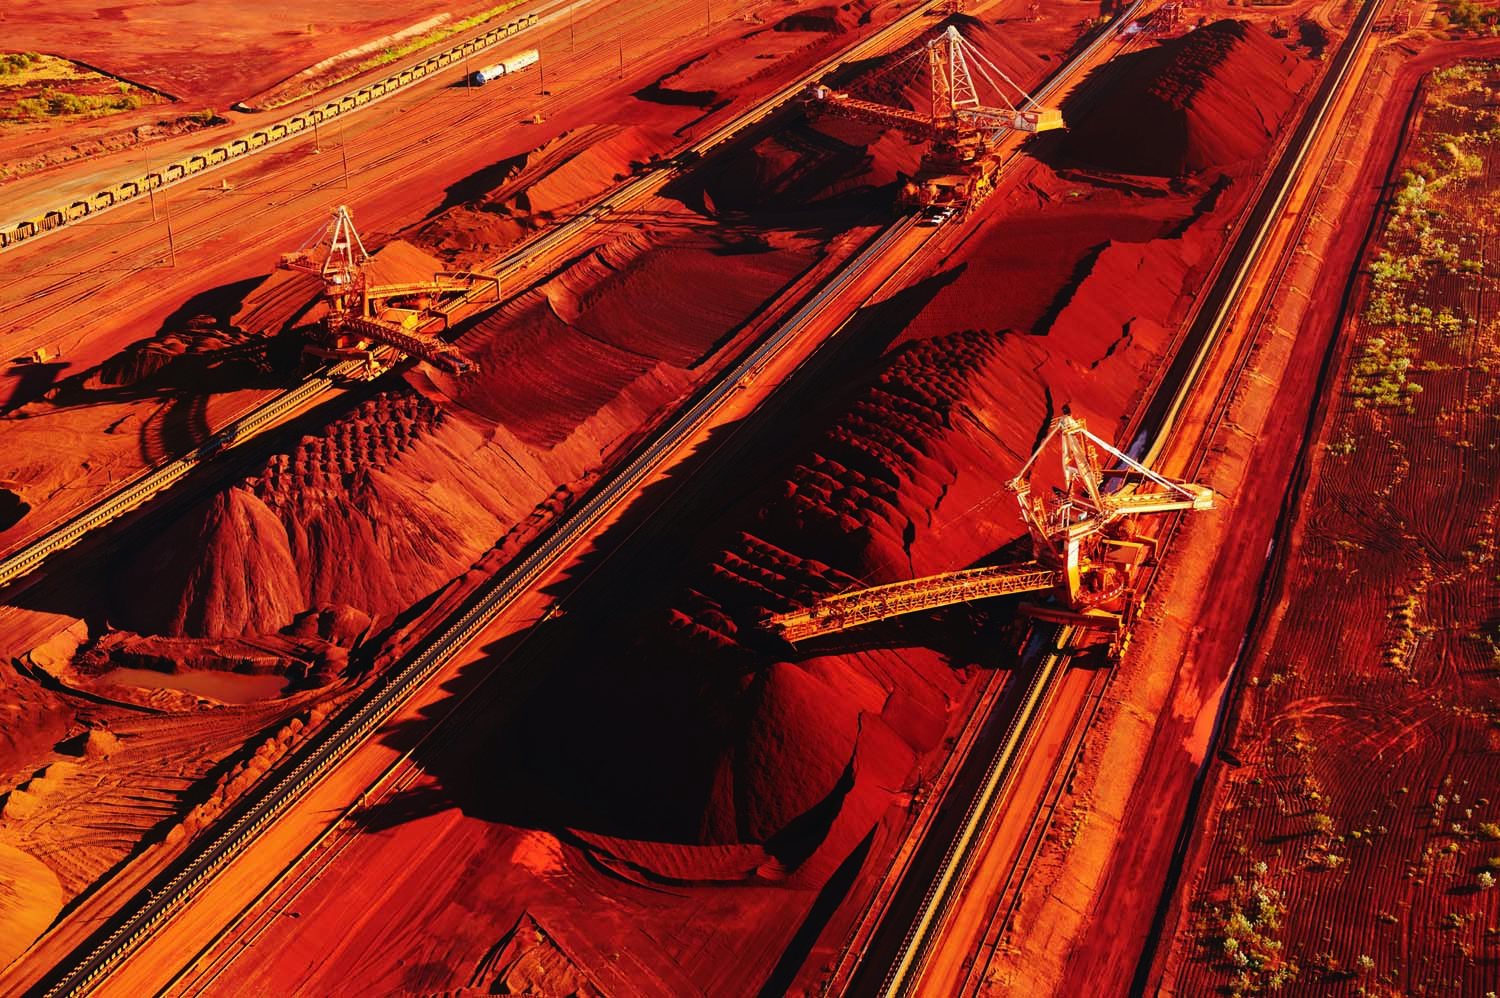 Since 2010, Pilbara Ports Authority has relocated external stockpiles from the east of Port Hedland